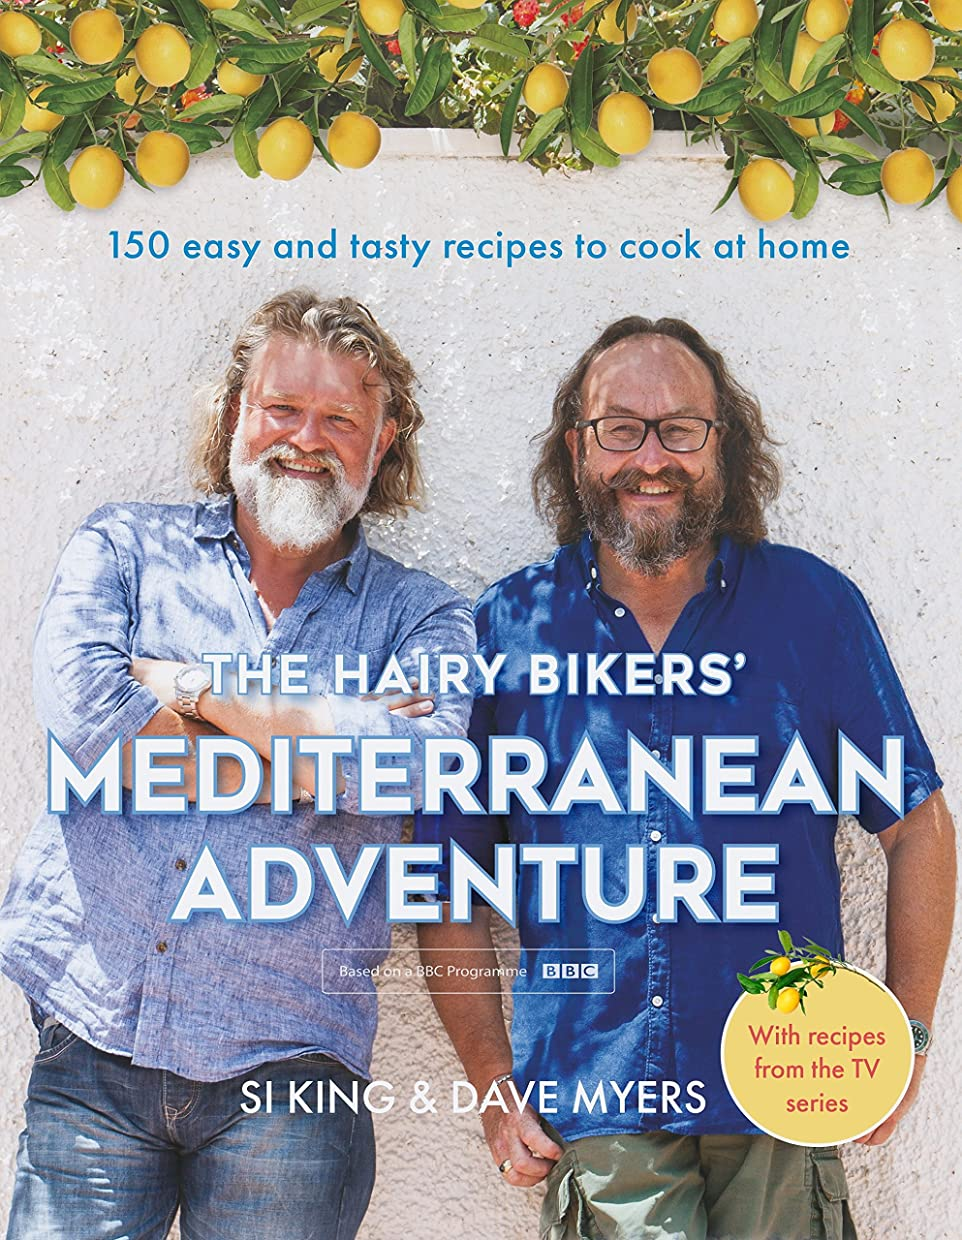 The Hairy Bikers' Mediterranean Adventure (TV tie-in): 150 easy and tasty recipes to cook at home (English Edition)